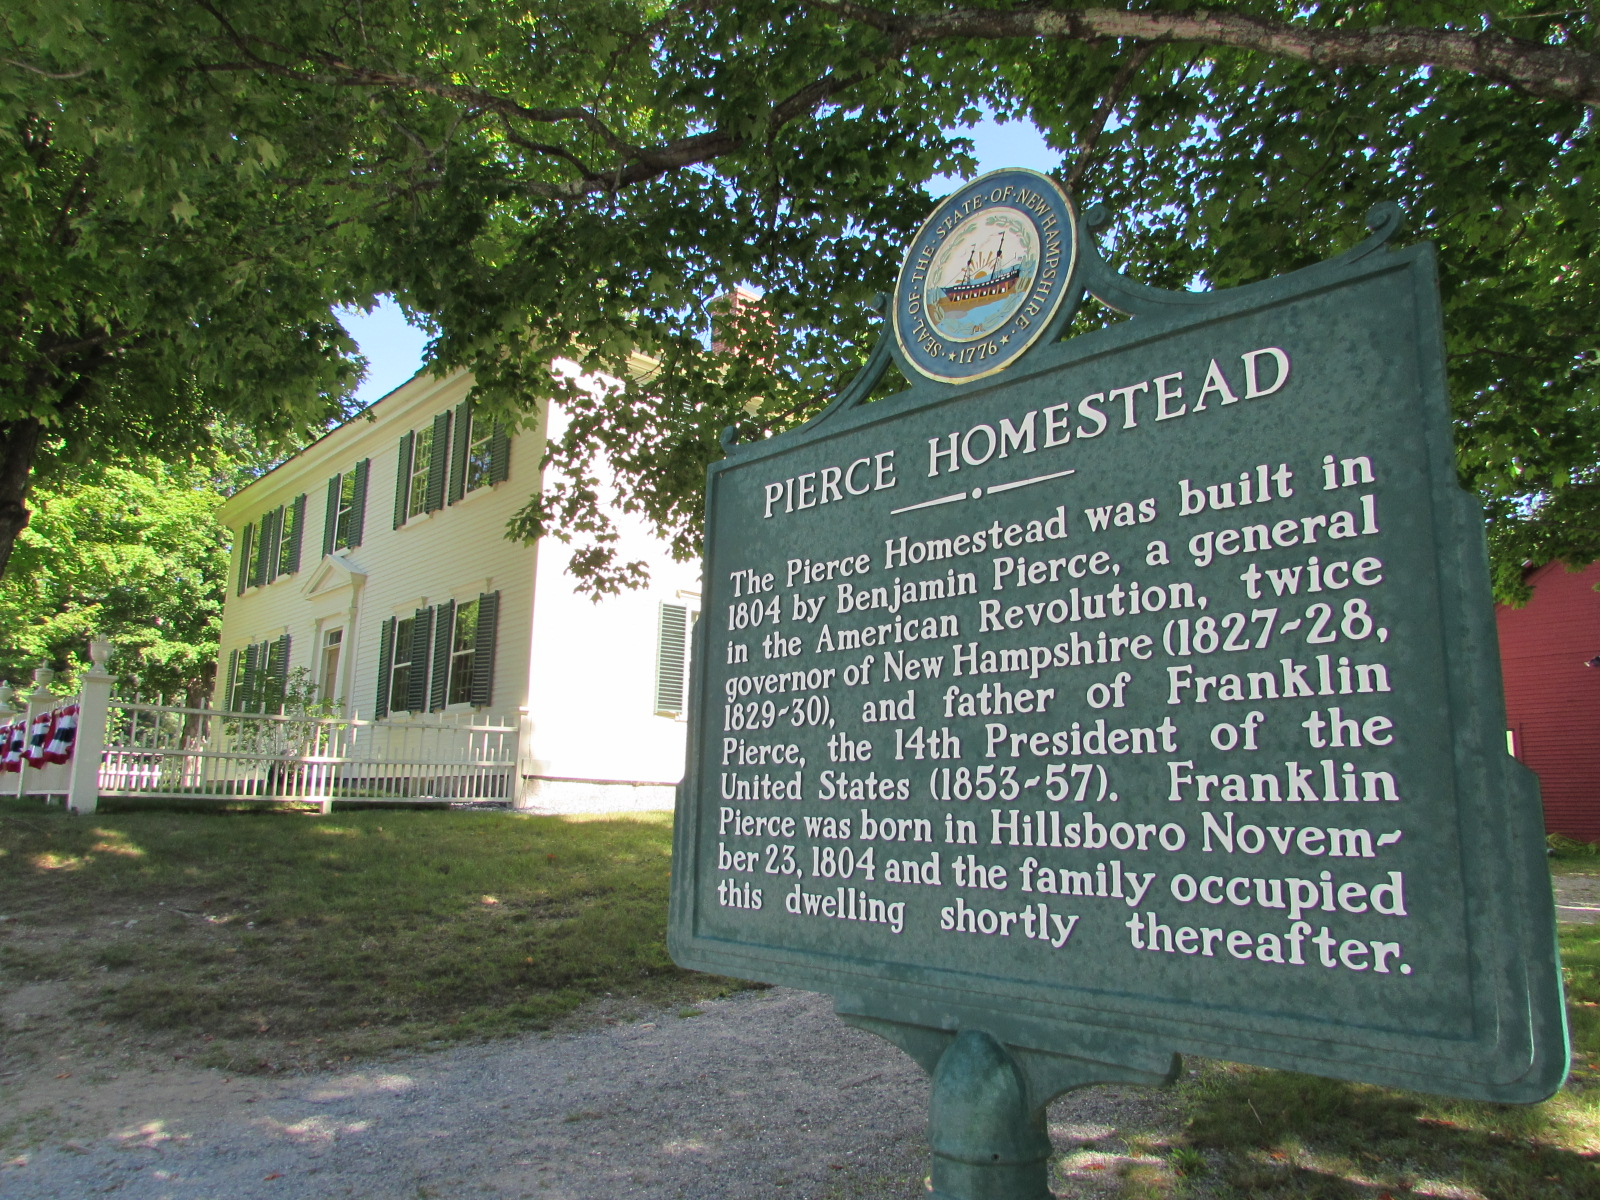 Today the  Pierce Homestead  still keeps watch over the old 2nd New Hampshire Turnpike, surrounded by open fields and forests. The spot is not unlike the world that formed young Franklin.